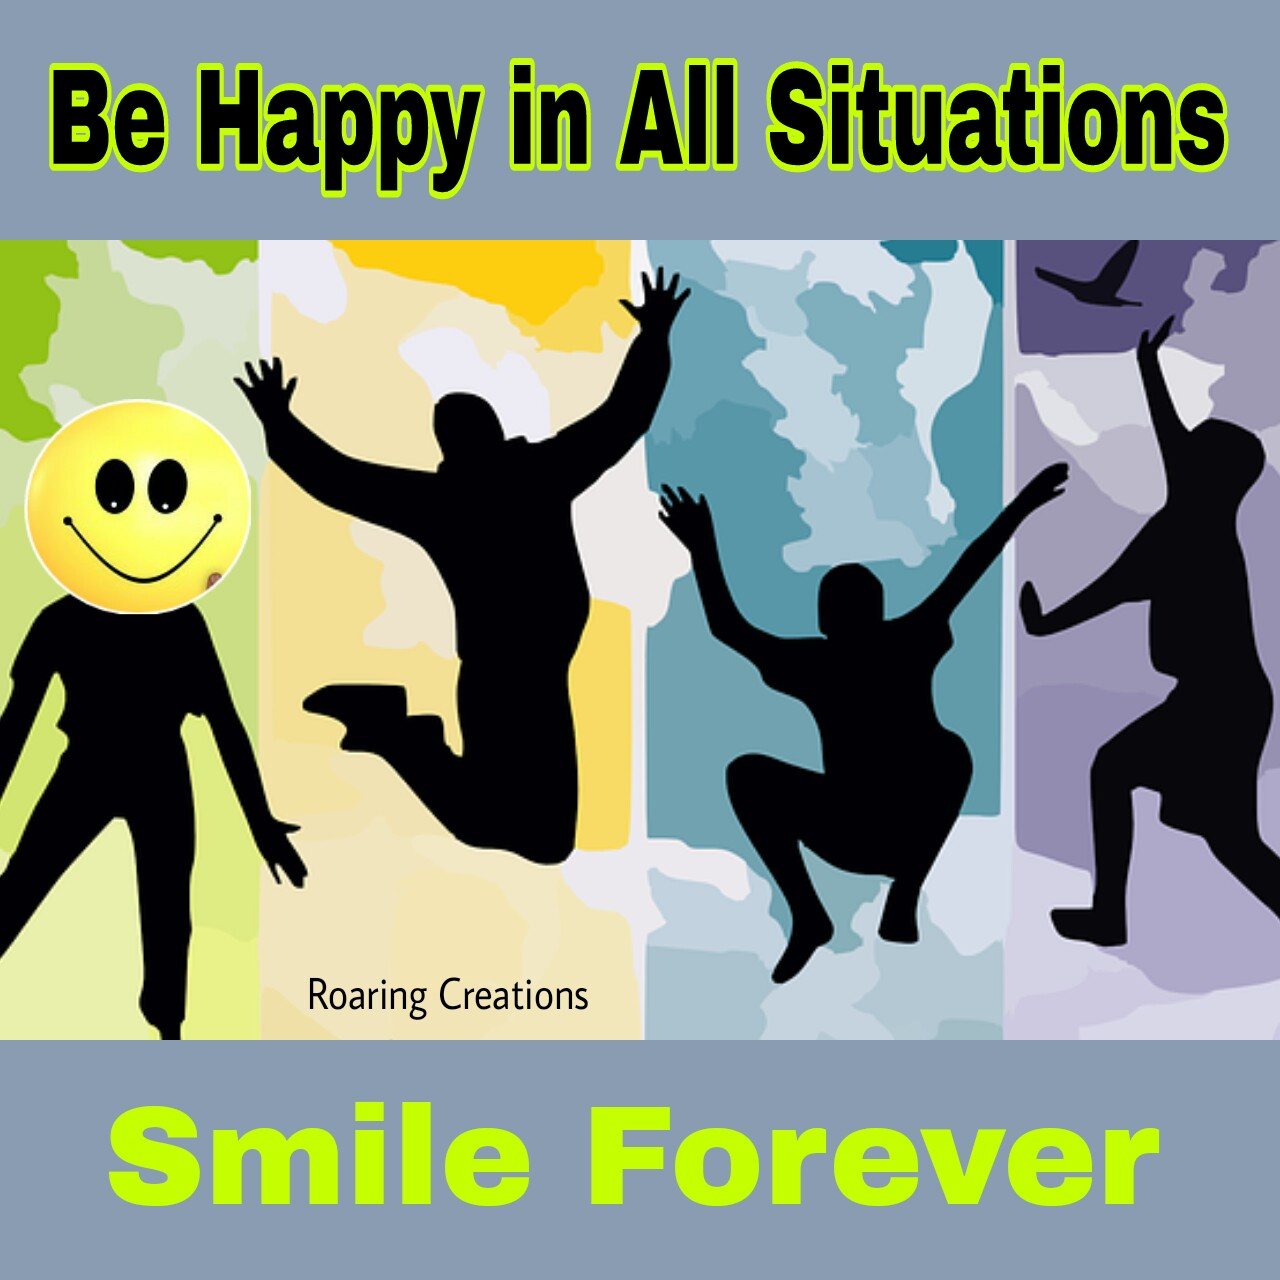 be happy in all situations